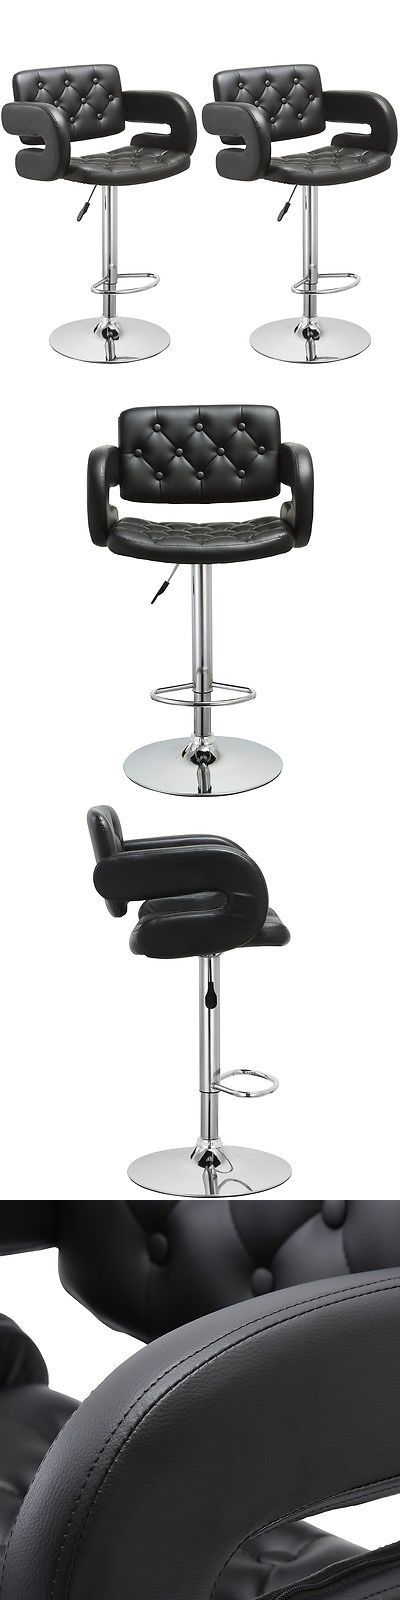 furniture: Set Of 2 Pu Leather Swivel Bar Stools Hydraulic Pub Chair Adjustable Black New -> BUY IT NOW ONLY: $94.99 on eBay!